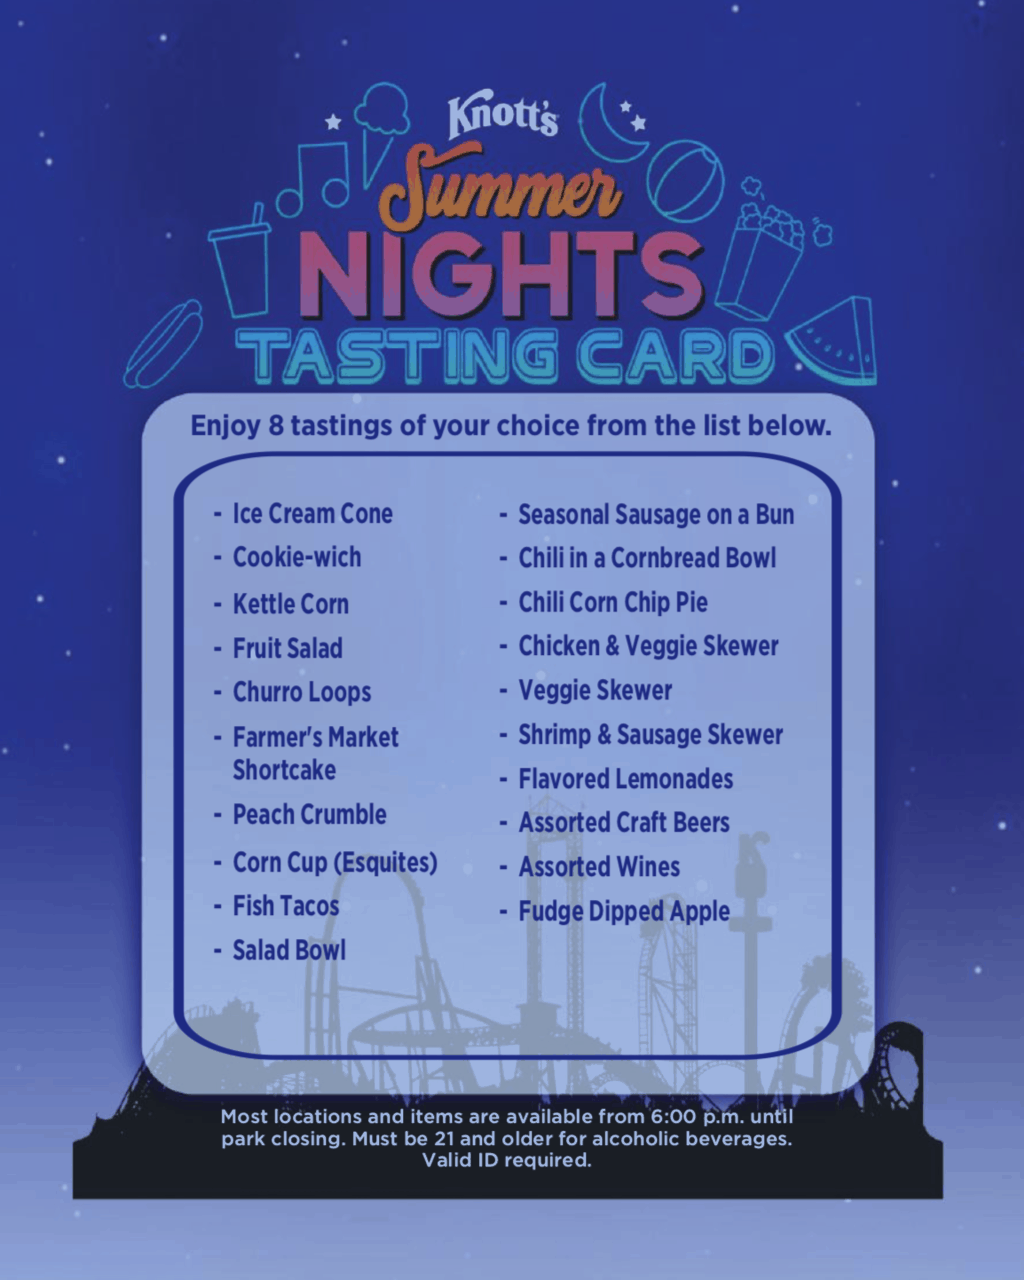 Knott's Summer Nights Tasting Card